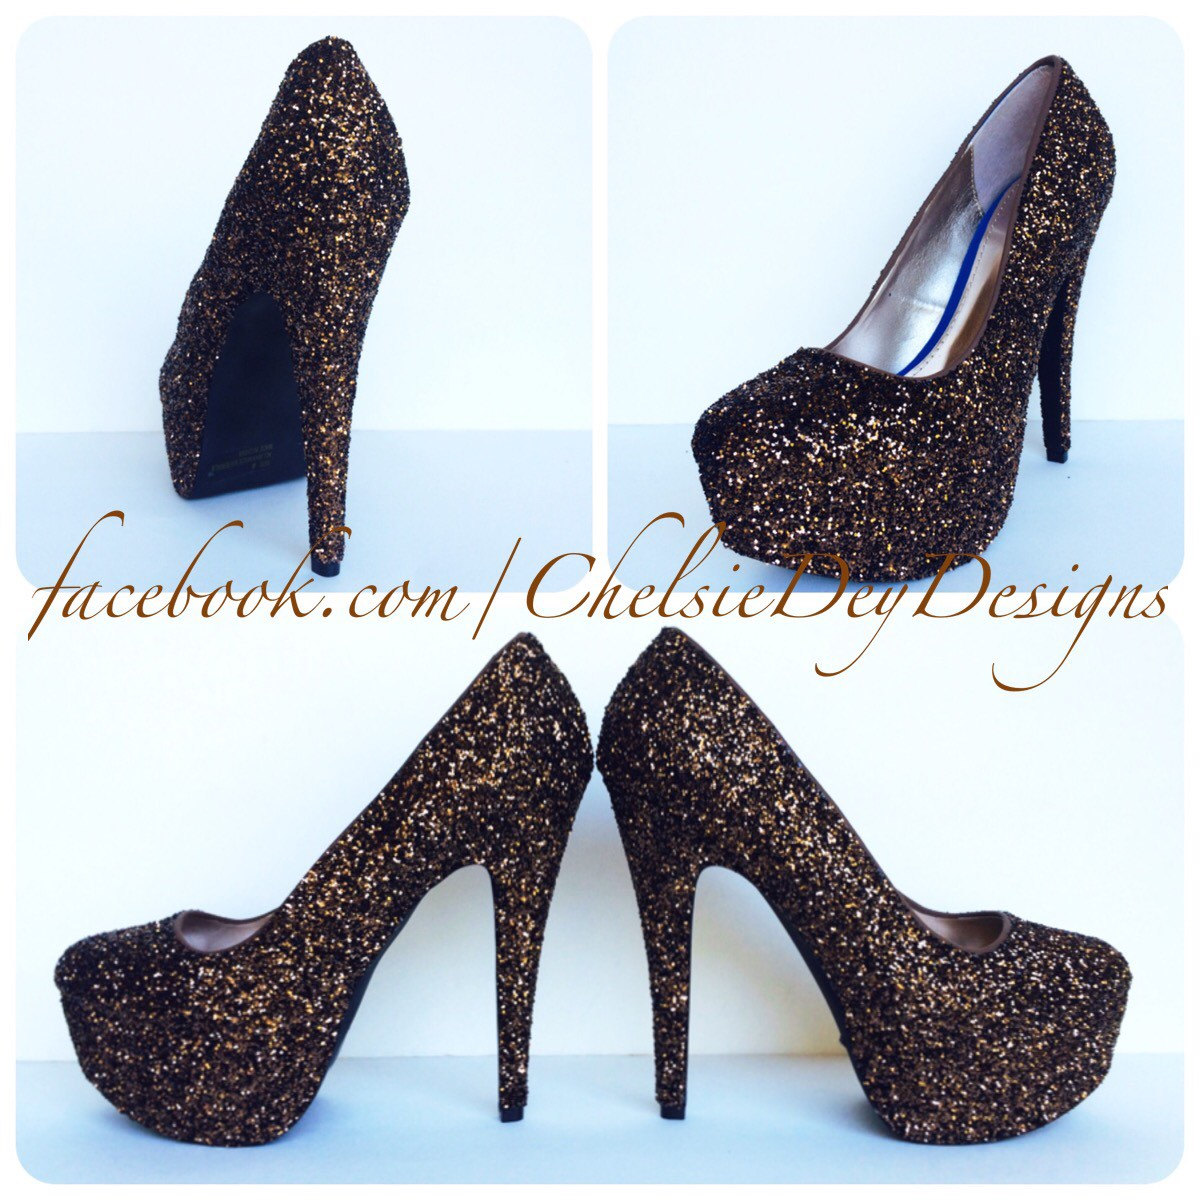 Brown Glitter High Heels - Brown Pumps - Copper Chocolate Chesnut Camel -  Antique Platform Shoes